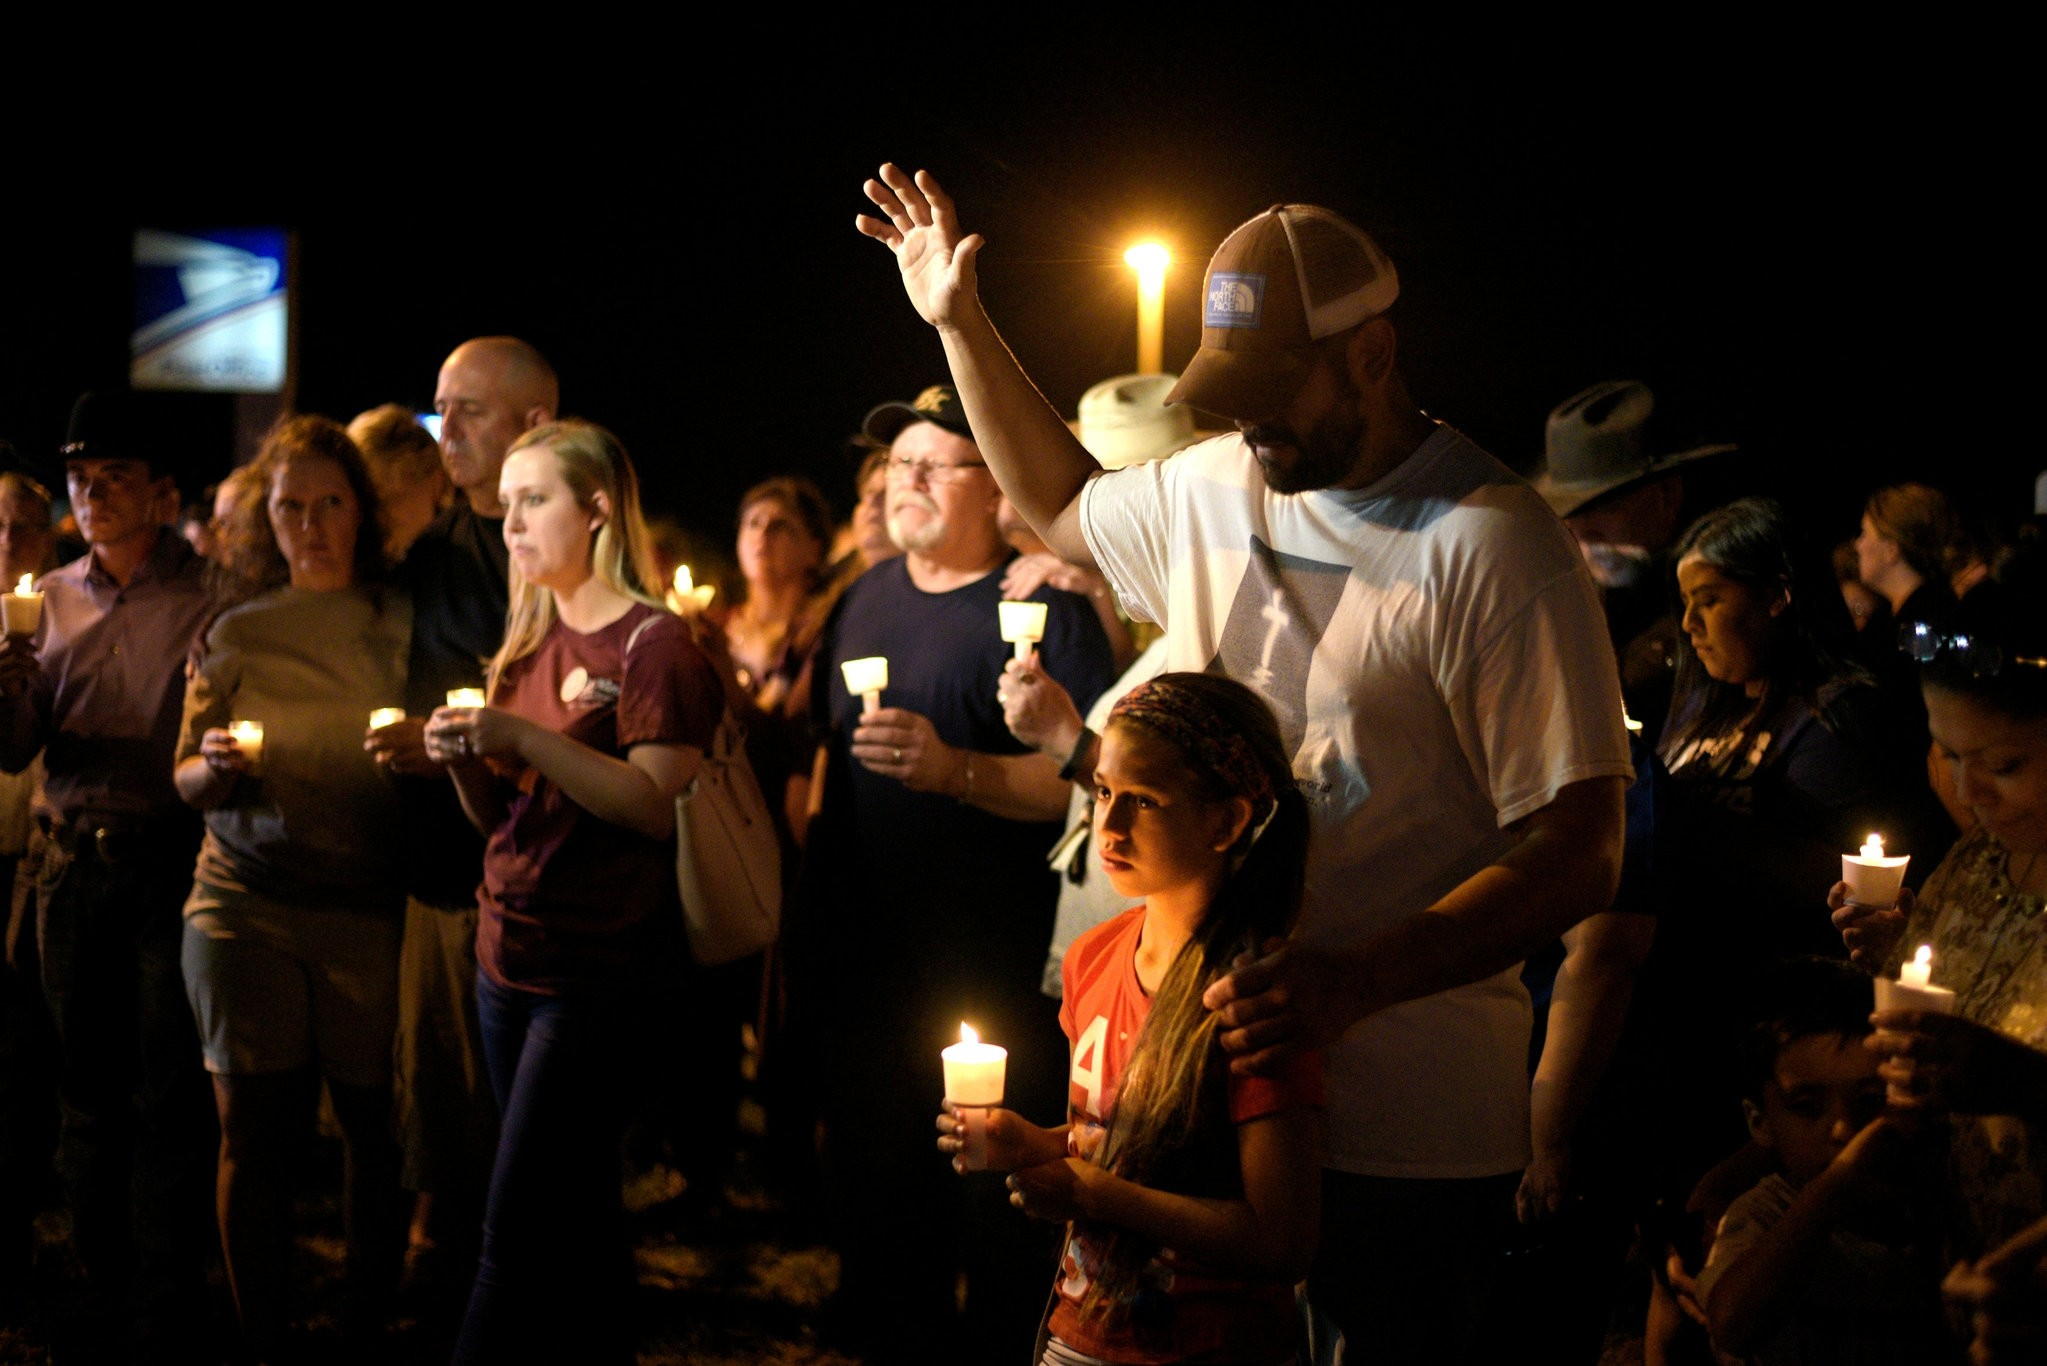 People attend a candle light vigil after a mass shooting at the First Baptist Church in Sutherland Springs, Texas, Nov. 5.